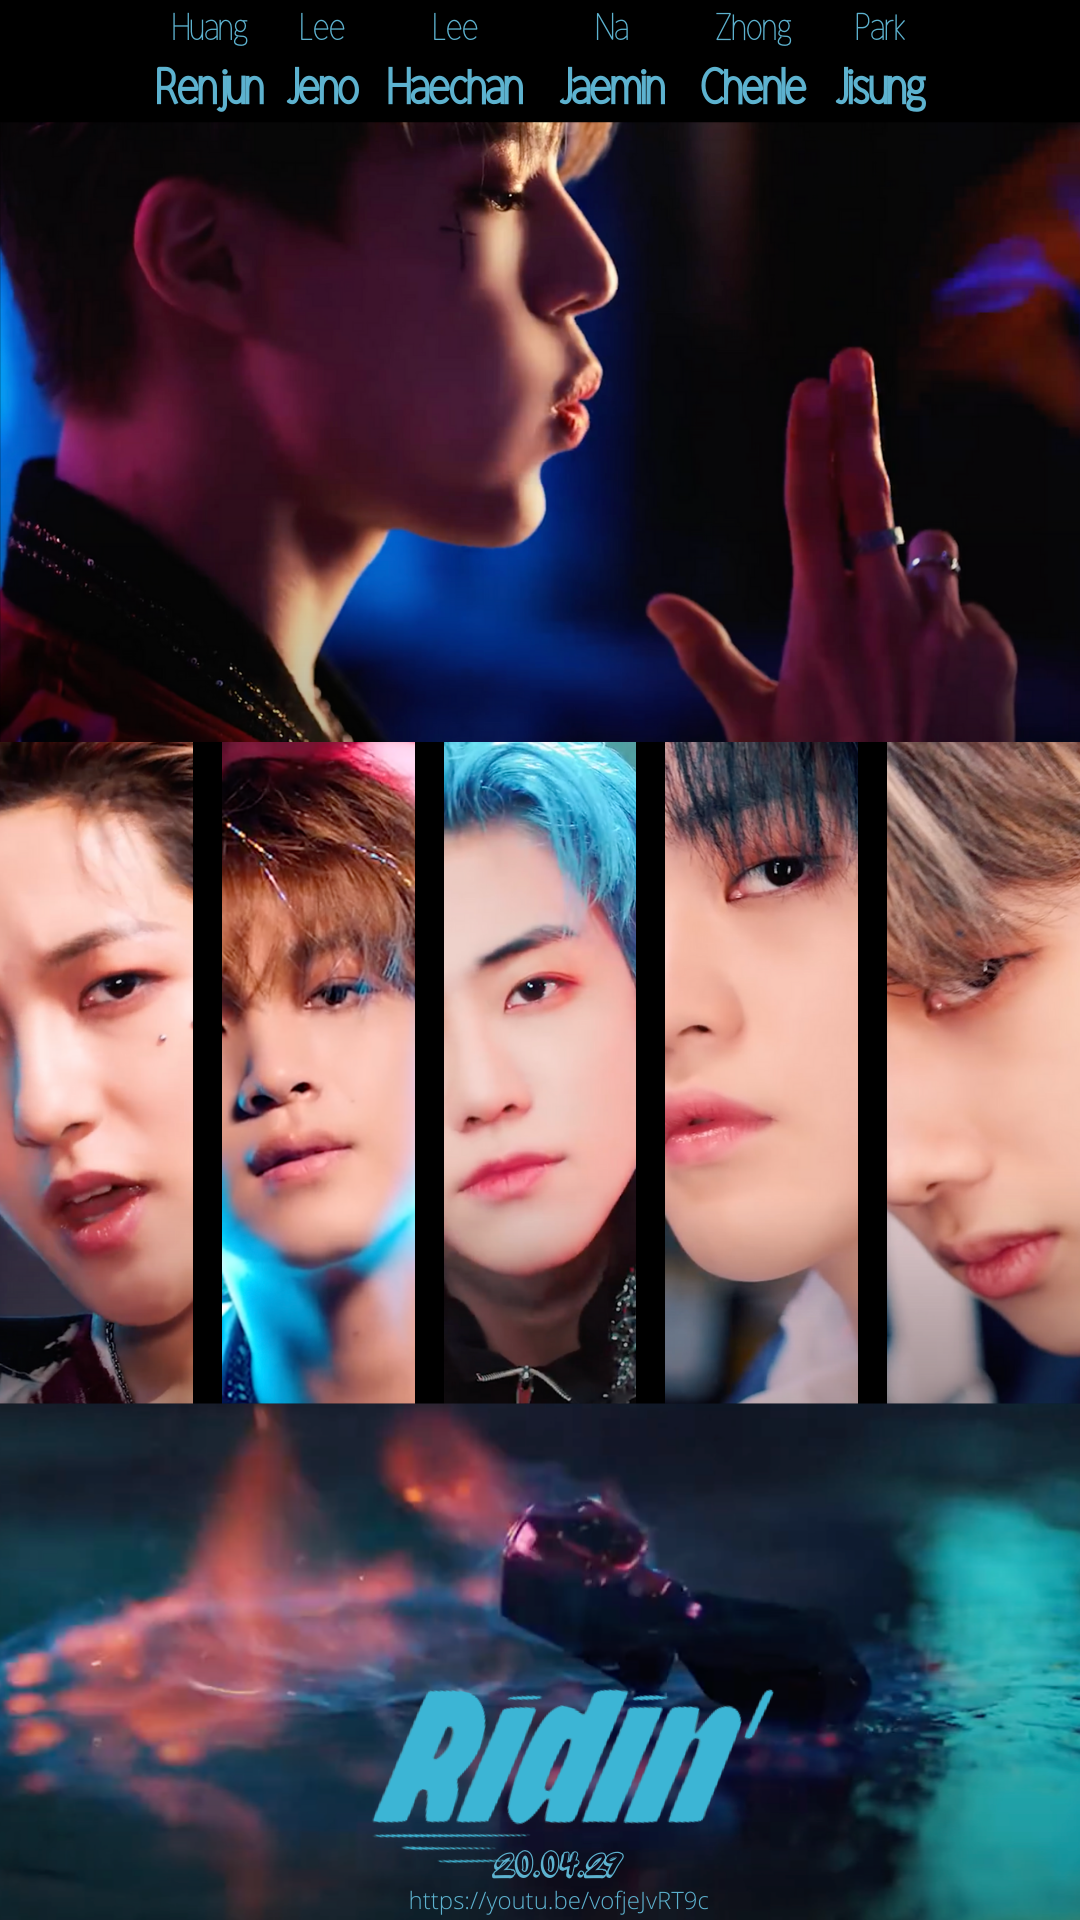 I made movie style posterswallpapers for Ridin NCT 1080x1920